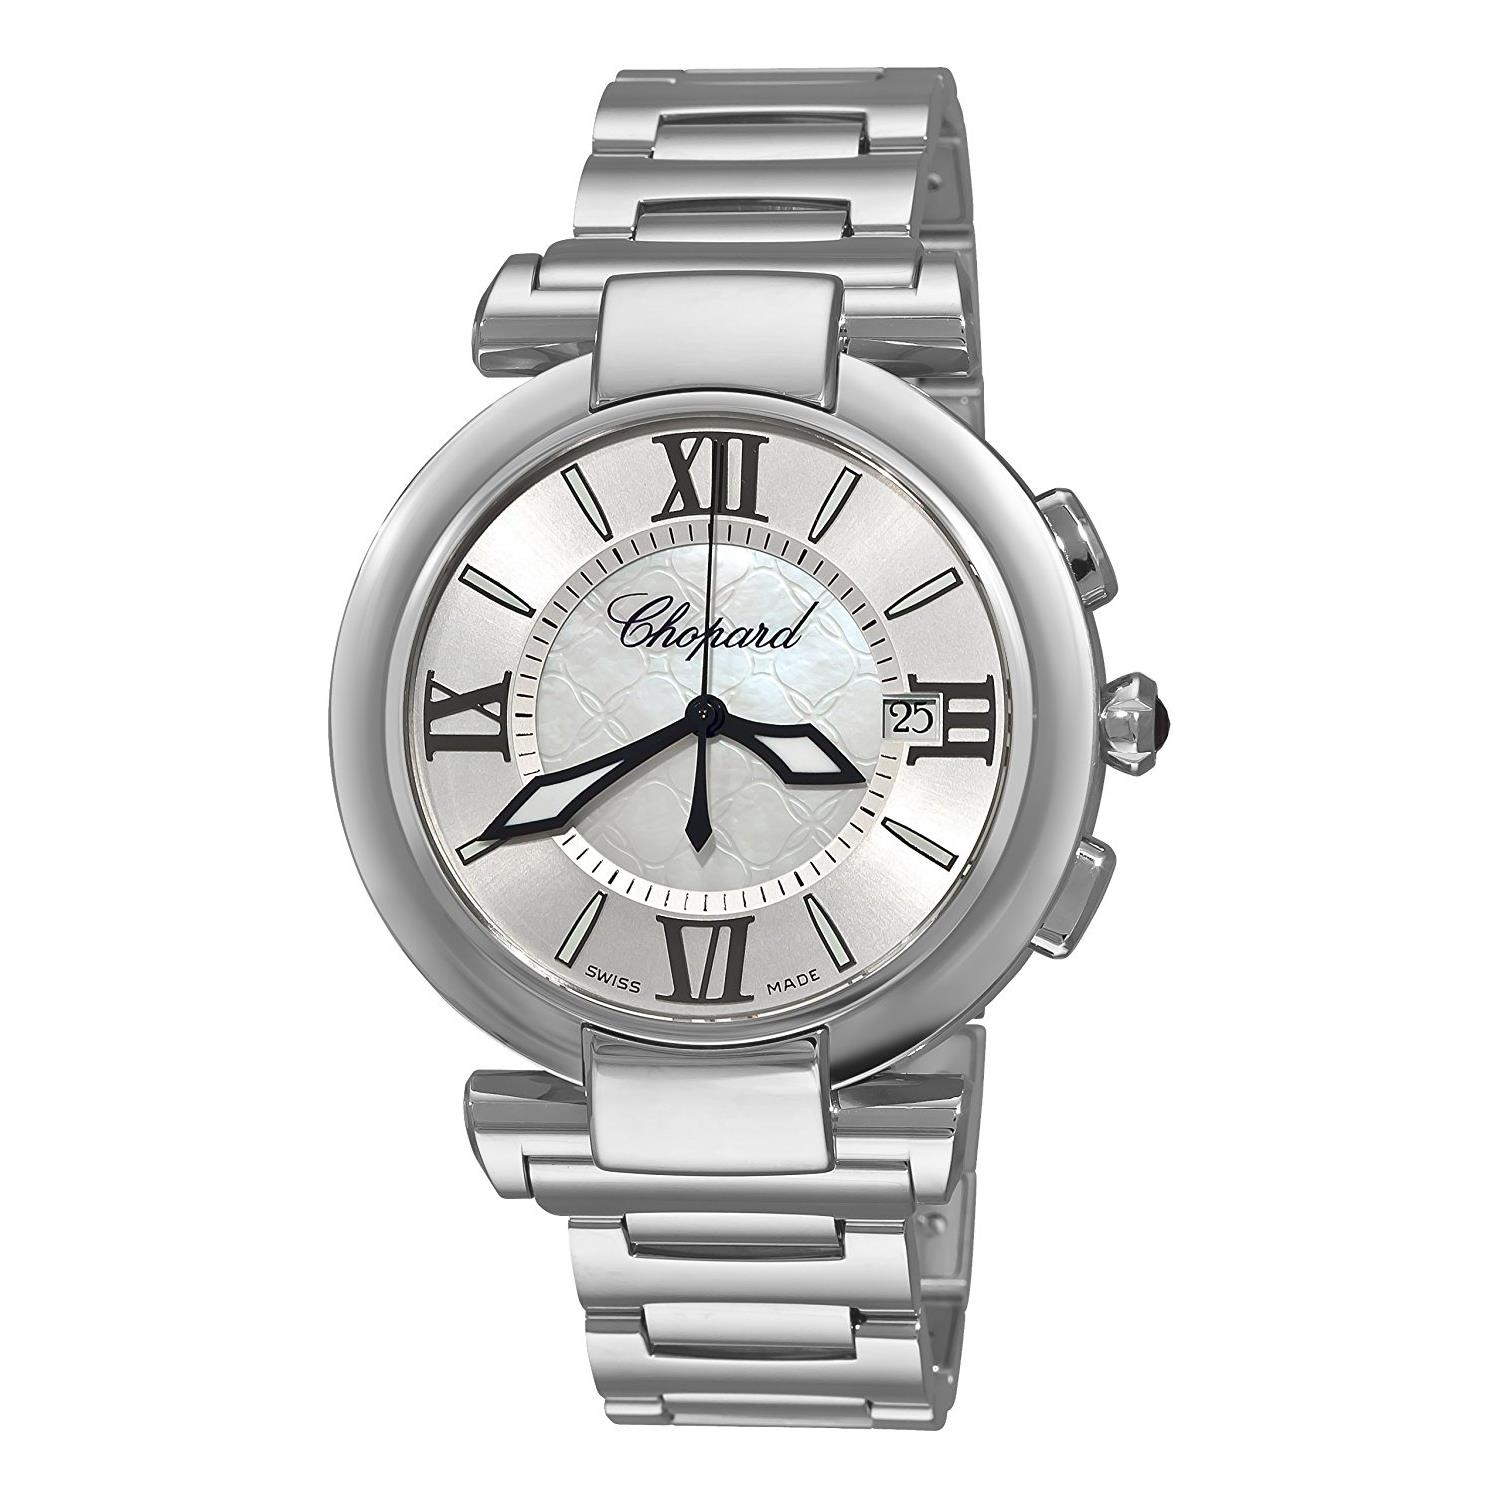 Chopard Men's 40mm Steel Bracelet & Case Anti Reflective ...